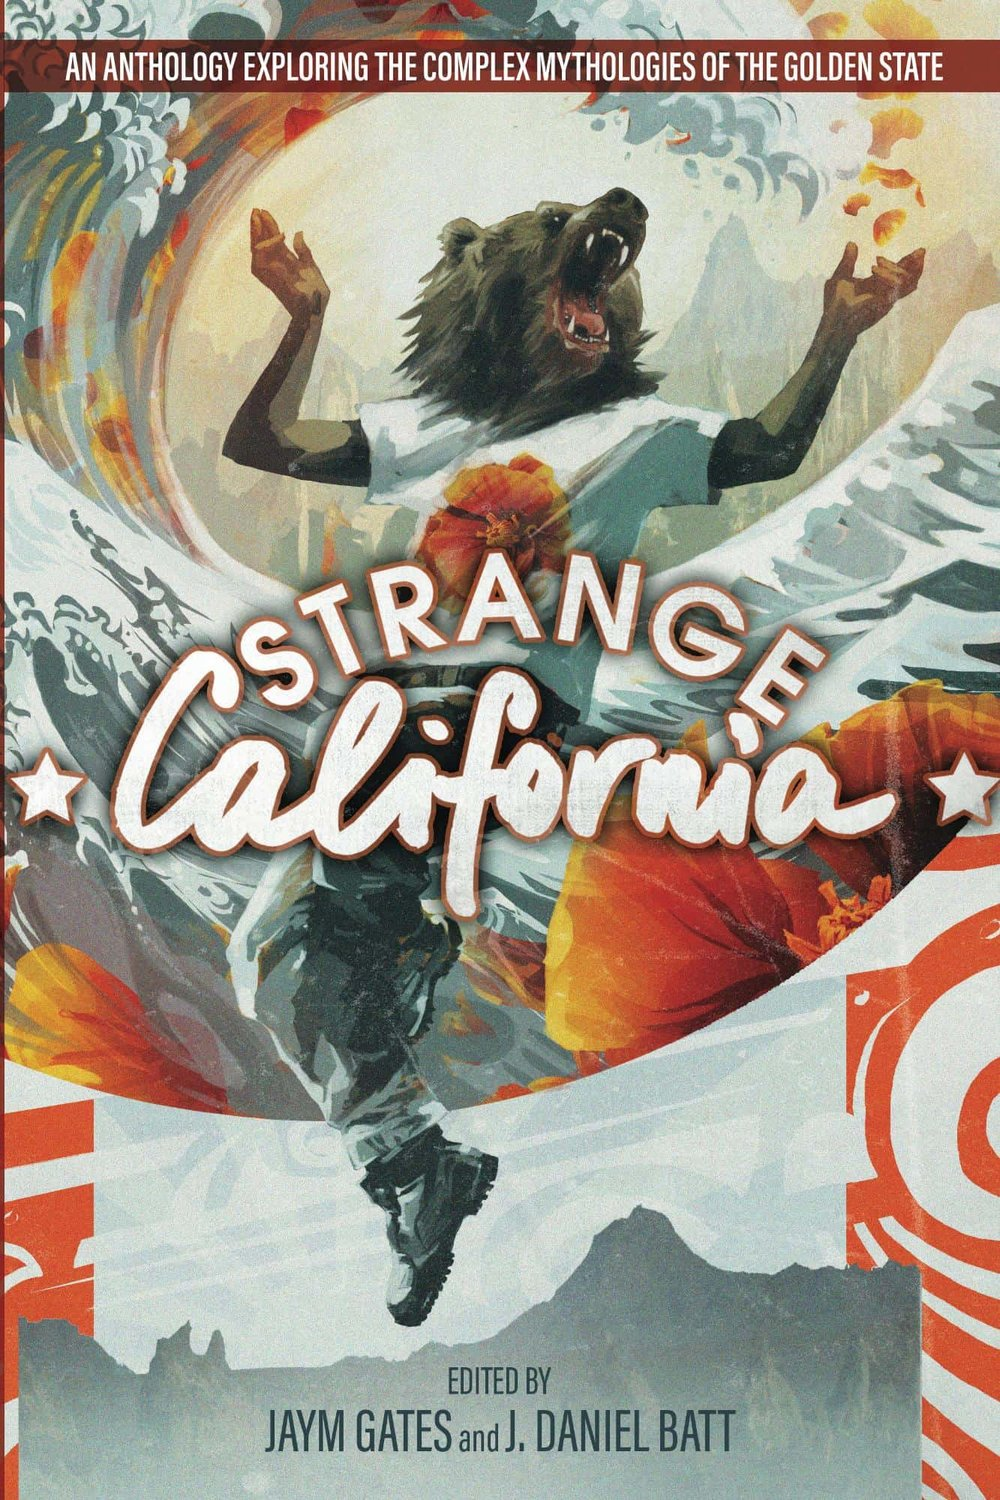 Strange_California_Cover_for_Kindle.jpg